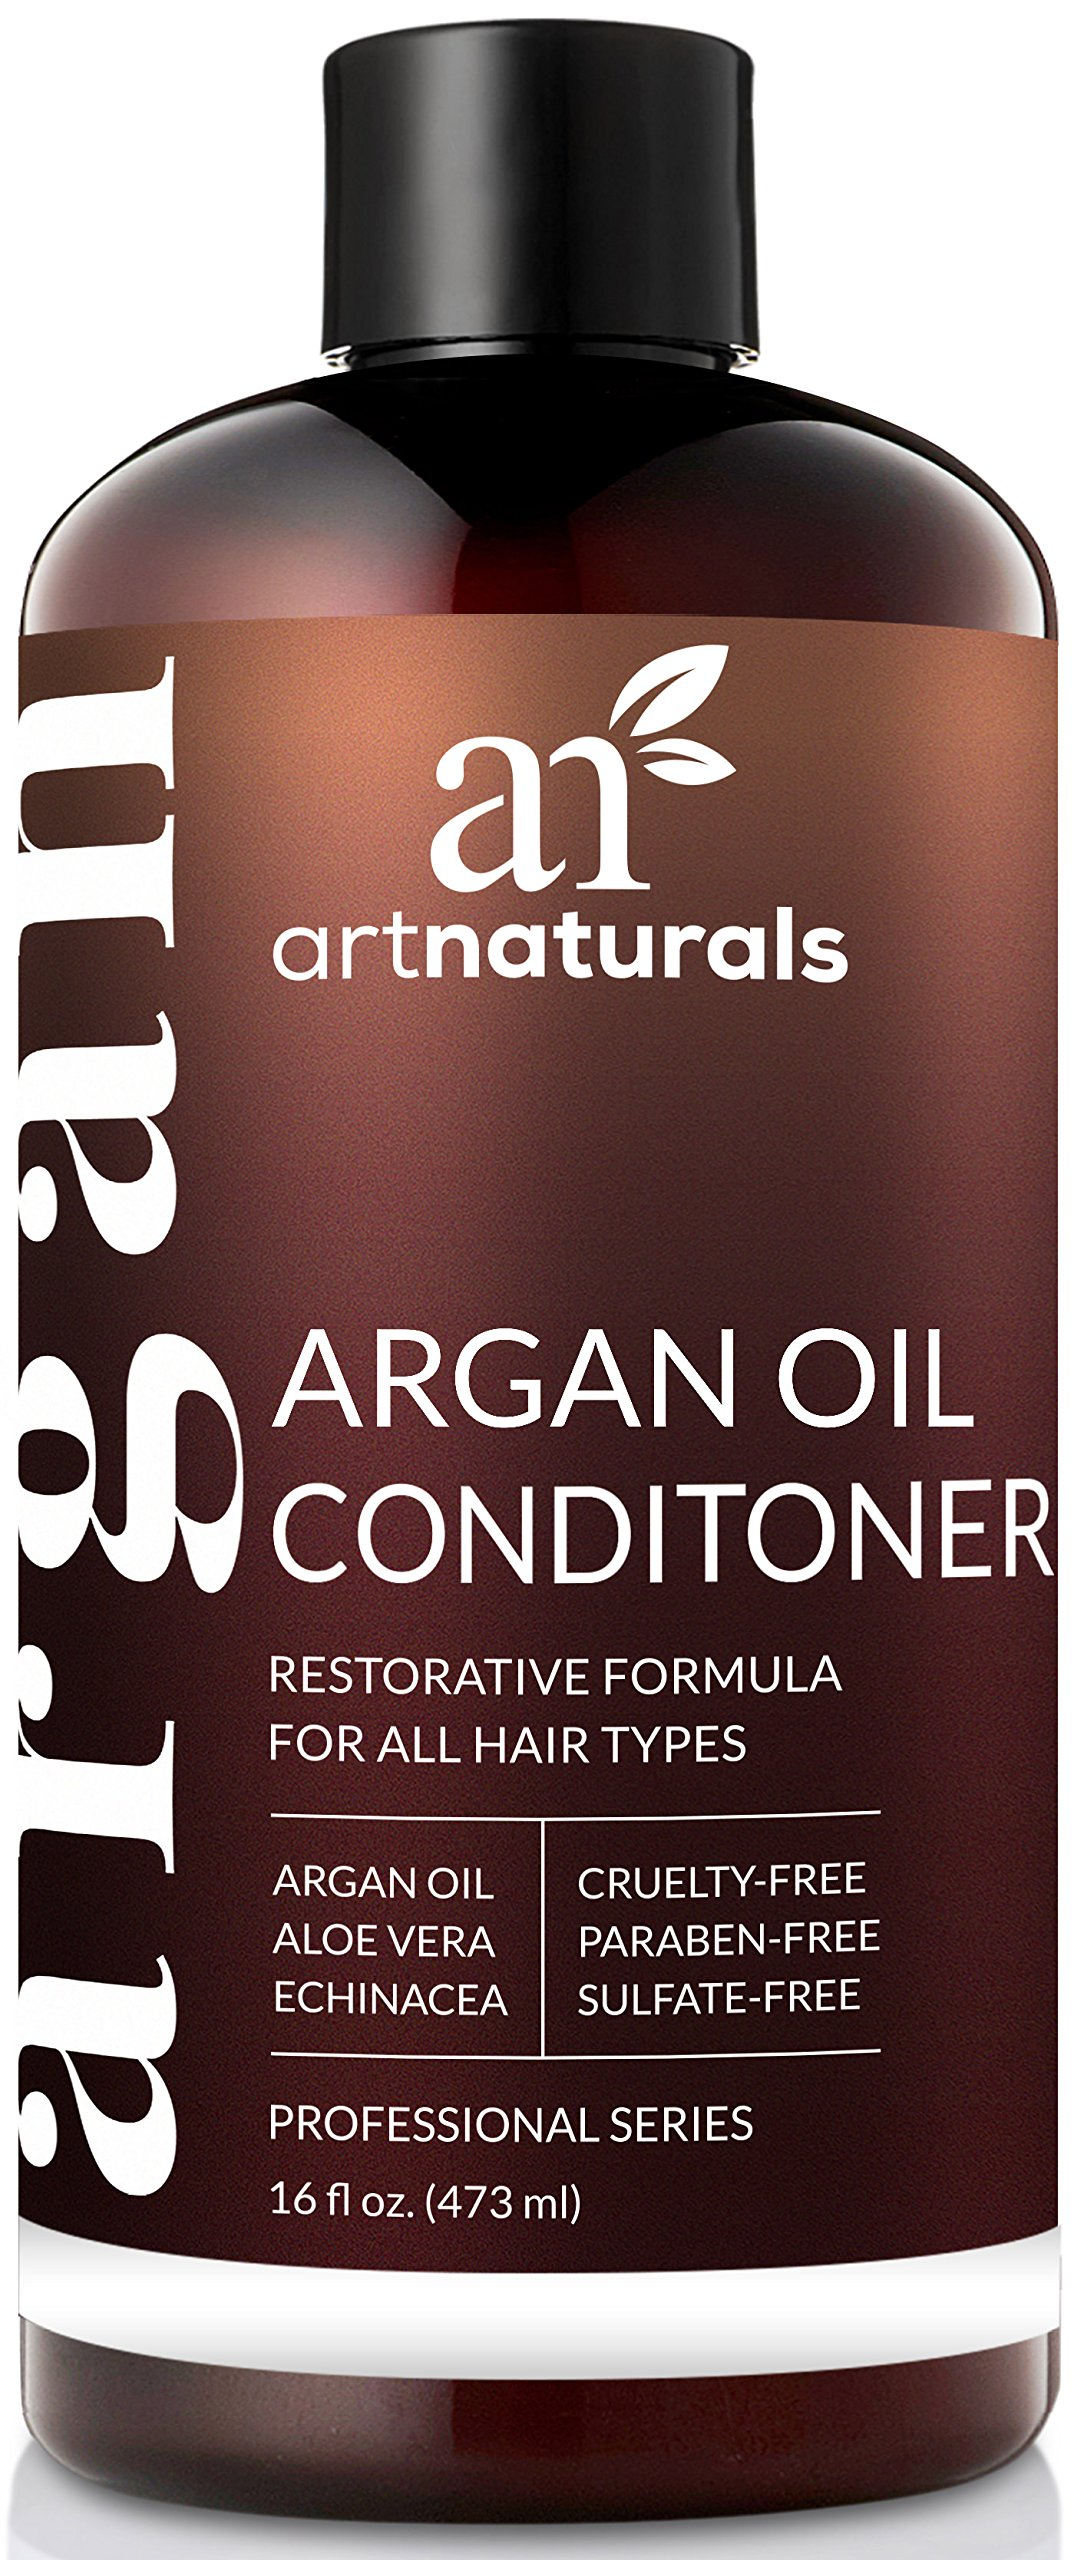 ArtNaturals Argan Oil Hair Conditioner  – (16 Fl Oz / 473ml) – Sulfate Free – Treatment for Damaged and Dry Hair – For All Hair Types – Safe for Color Treated Hair